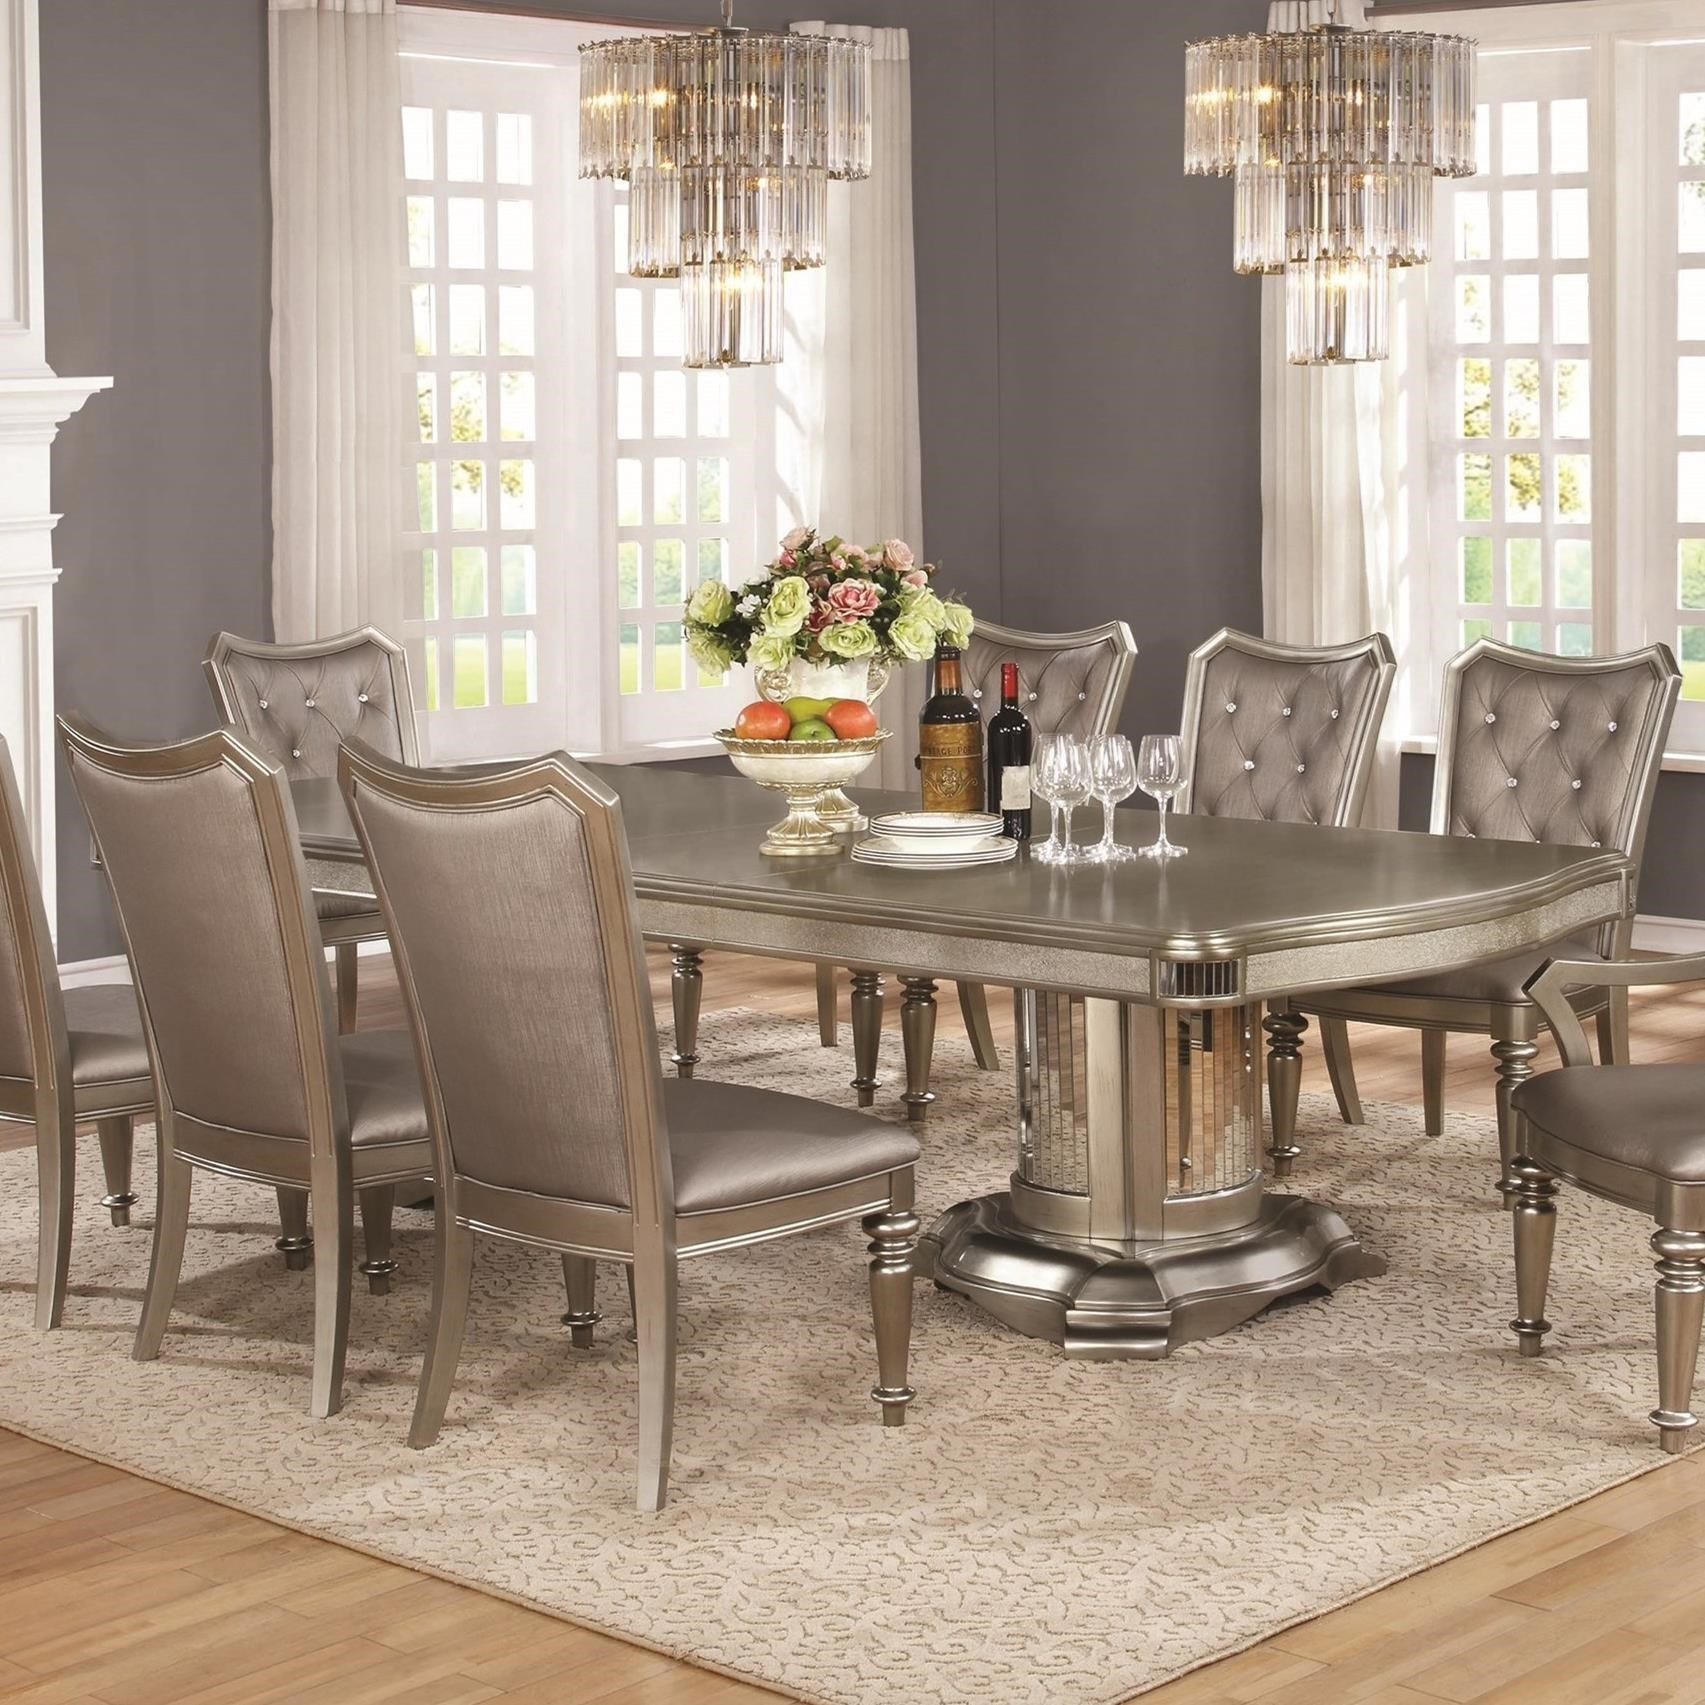 Value City Furniture & Danette Double Pedestal Dining Table with Leaf by Coaster at Value City Furniture